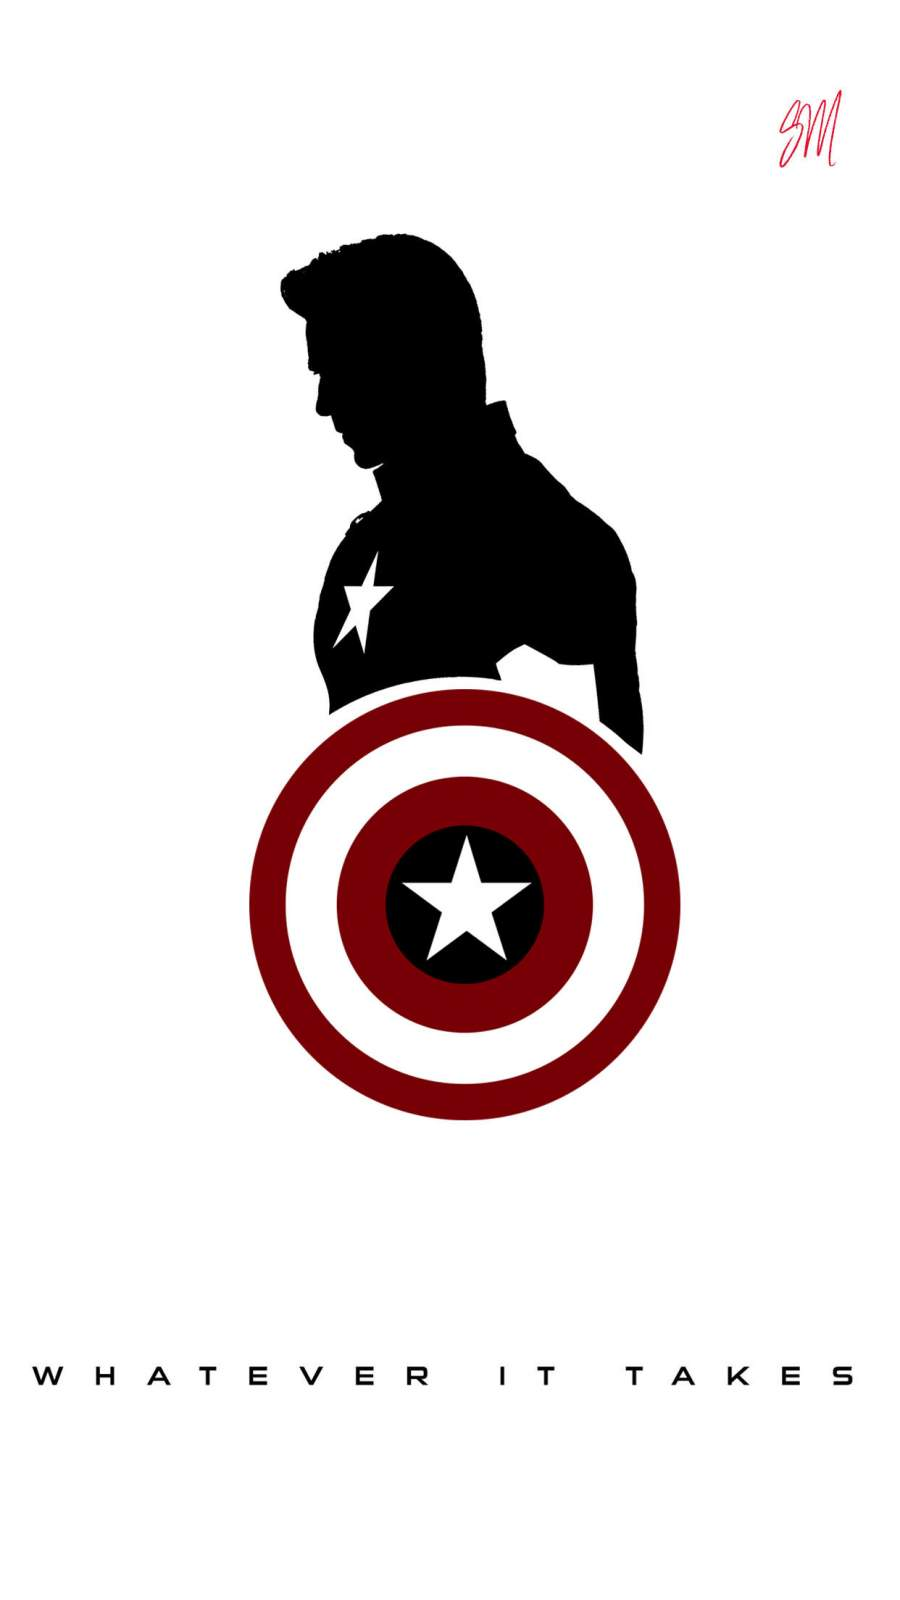 Cute Christmas Iphone Wallpapers Whatever It Takes Captain America Iphone Wallpaper